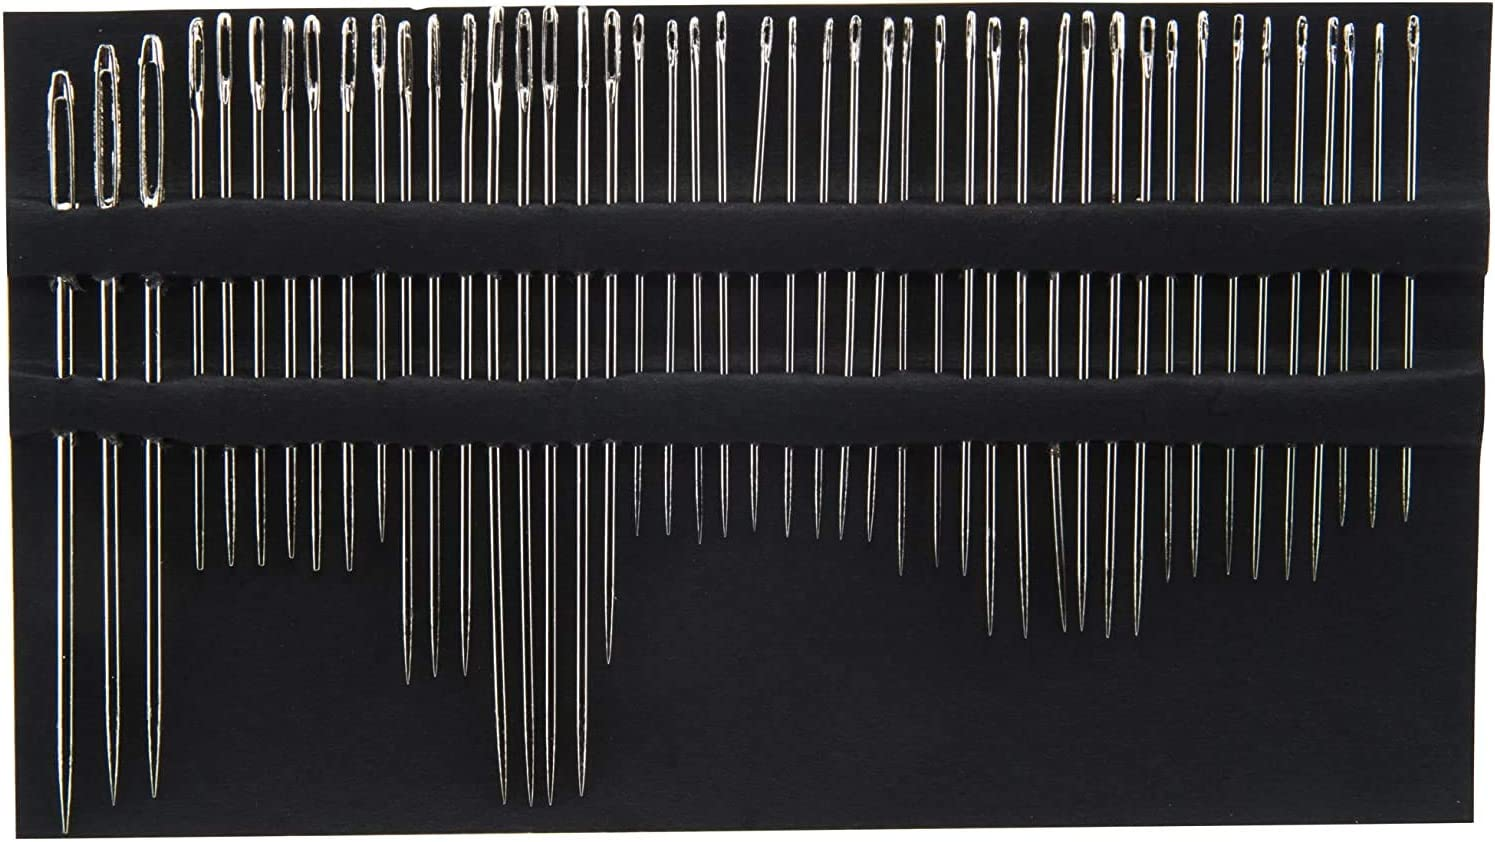 Embroidery Darners 45-Count 2 Pack Betweens Chenille SINGER 01125 Assorted Hand Needles Assorted Sizes Sharps /& Tapestry